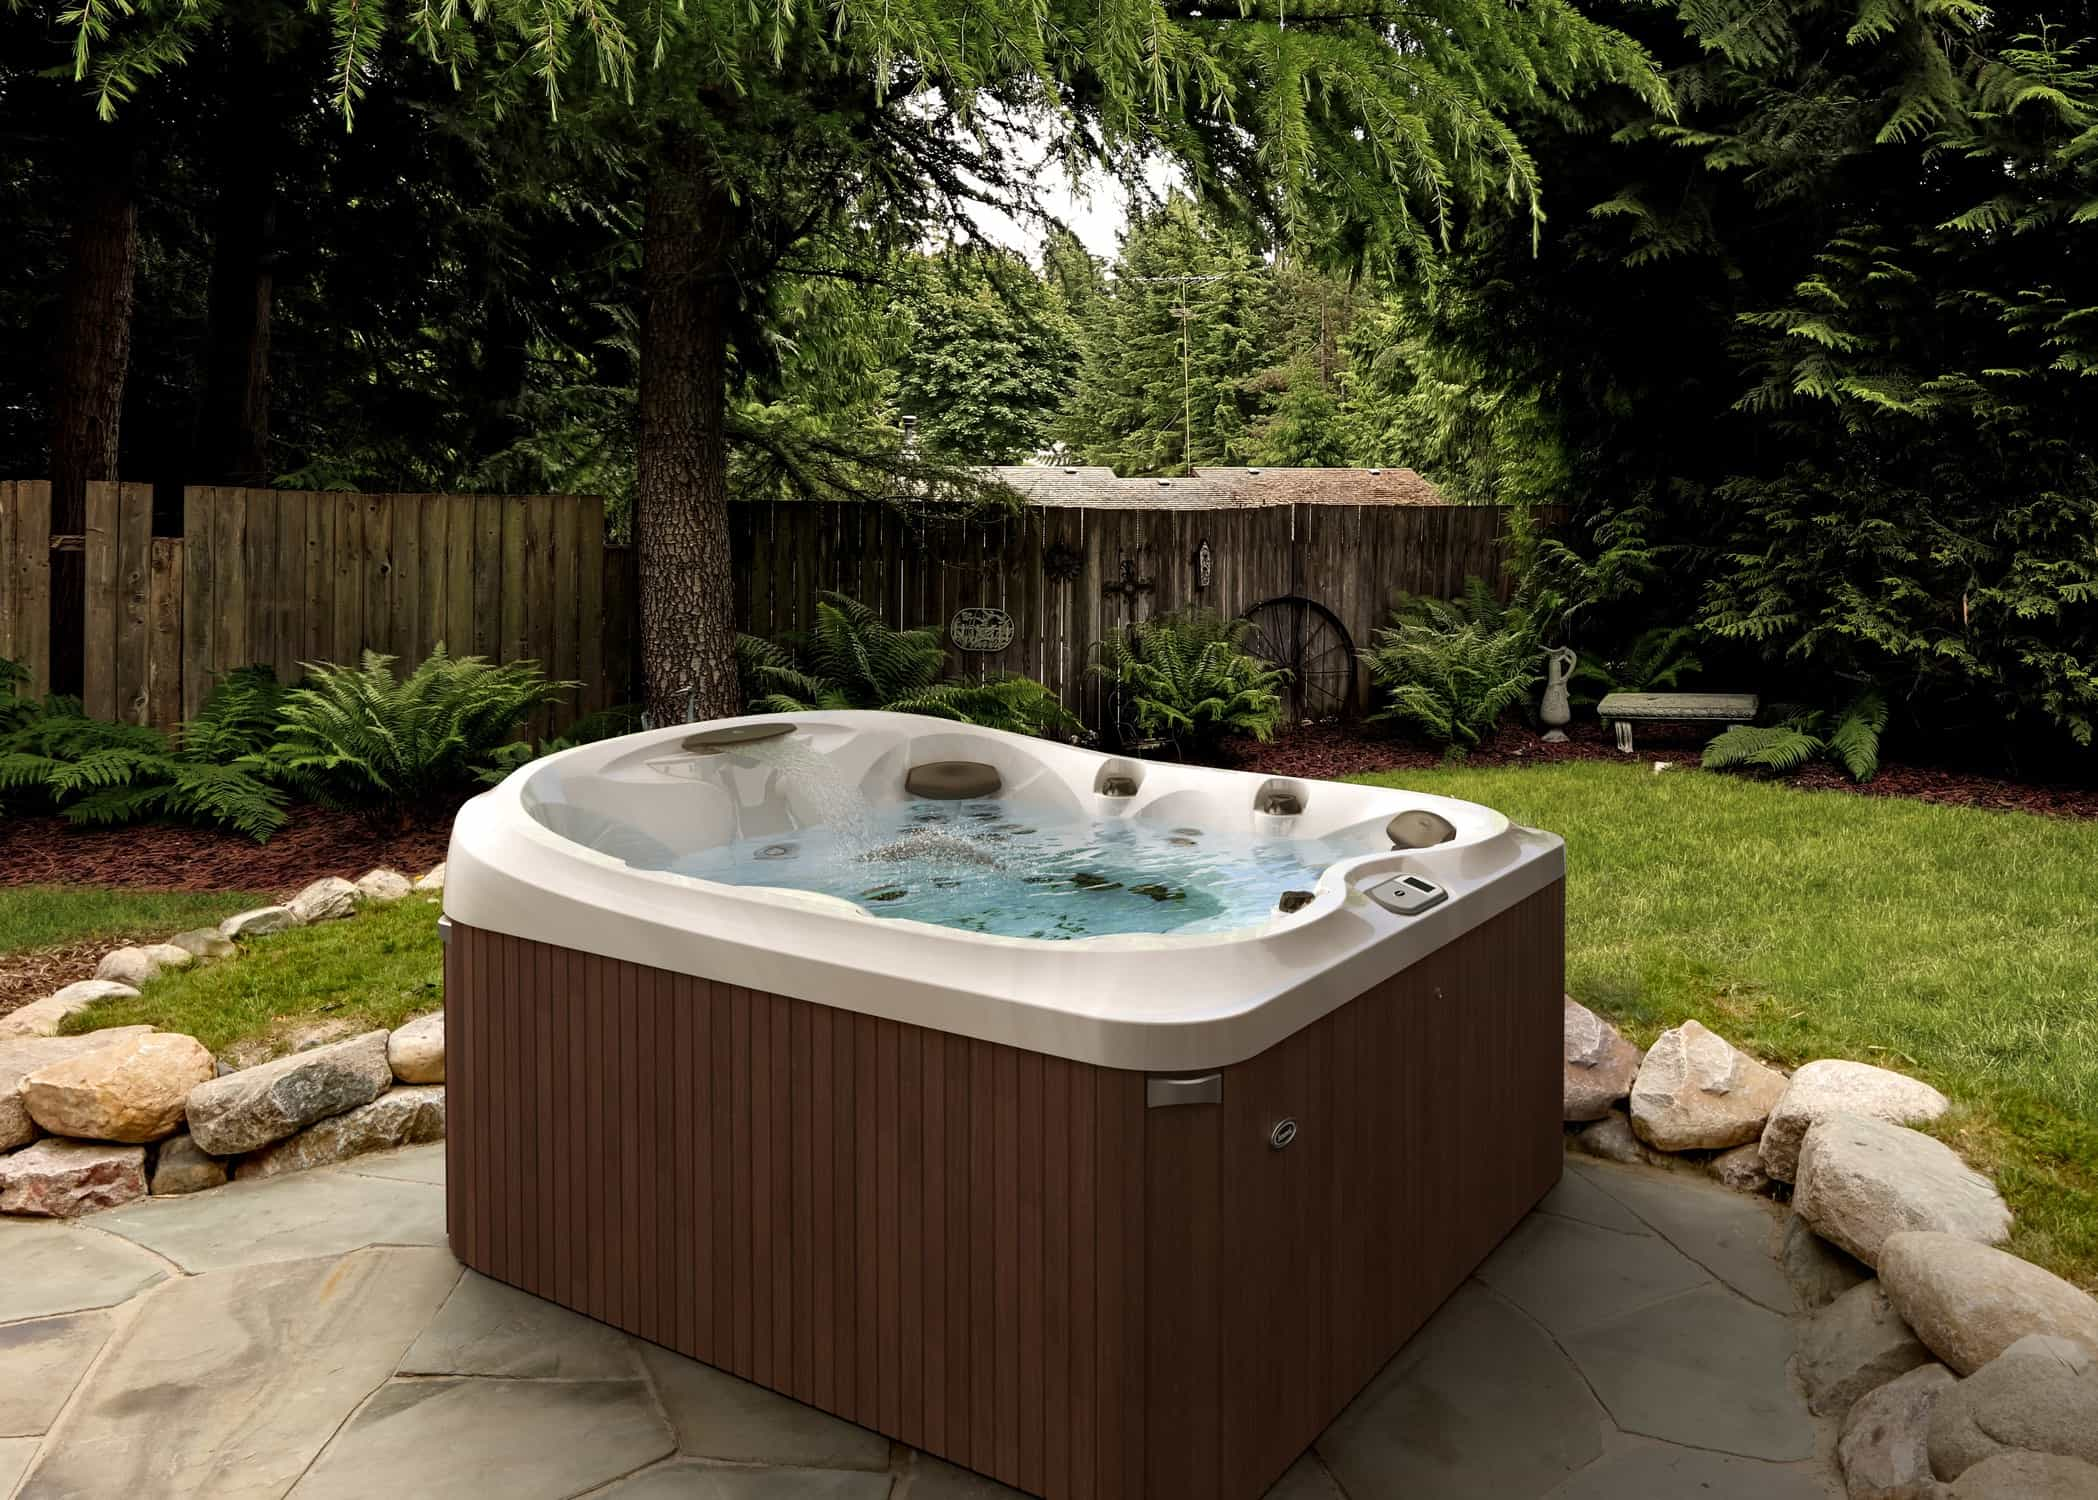 Hot Tub Myths and Facts